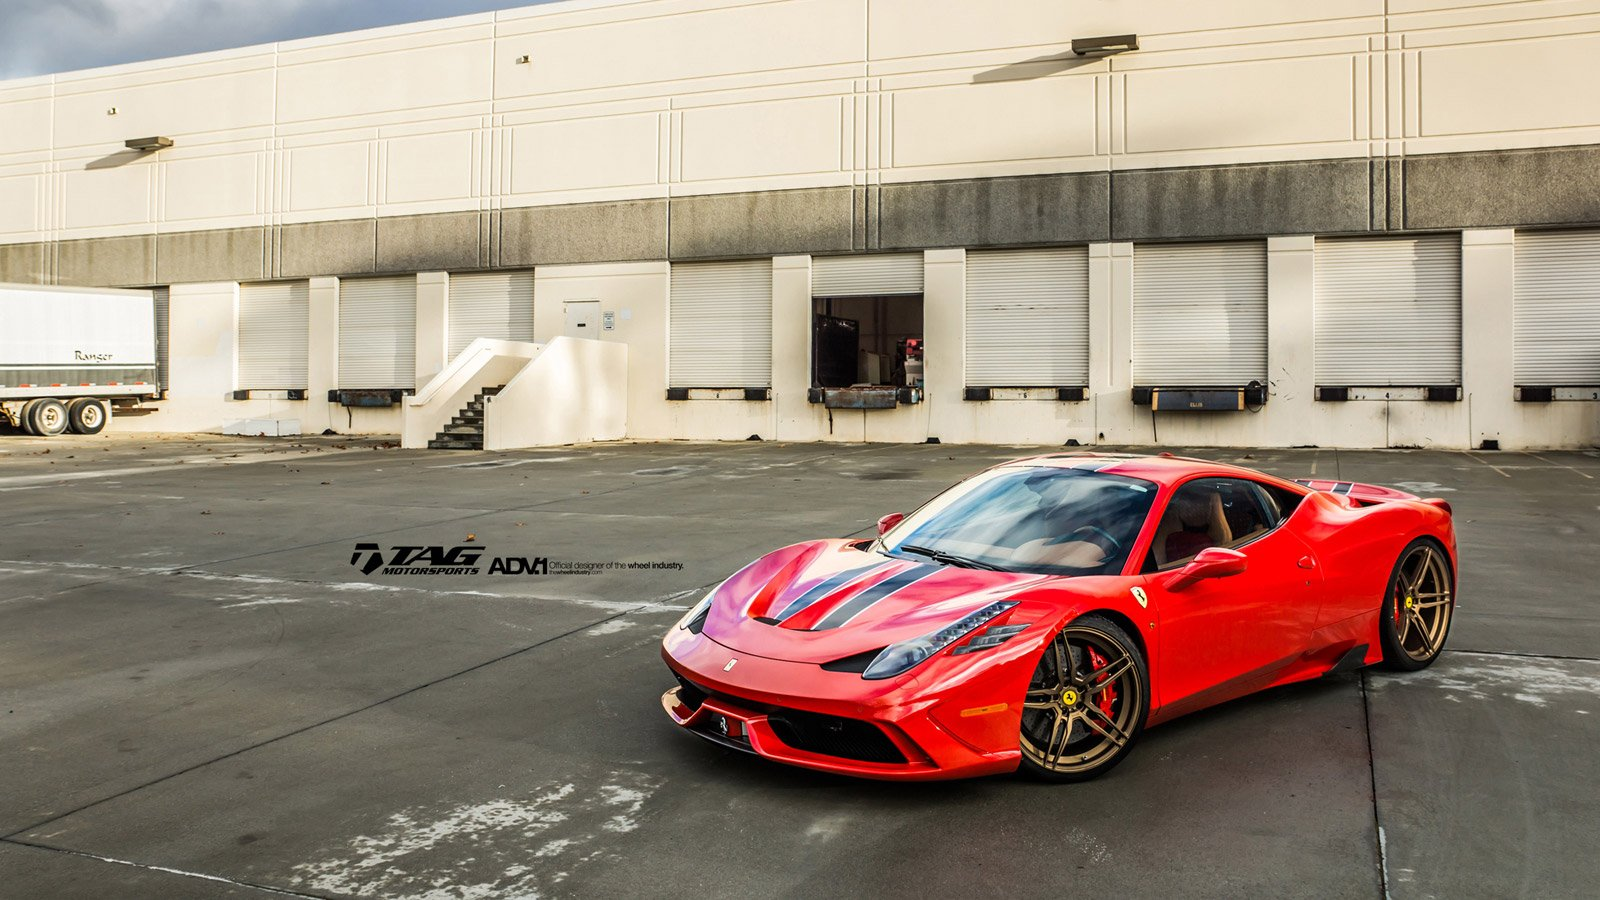 2014 Adv1 Ferrari 458 Speciale Supercars Wheels Wallpaper 1600x900 567266 Wallpaperup